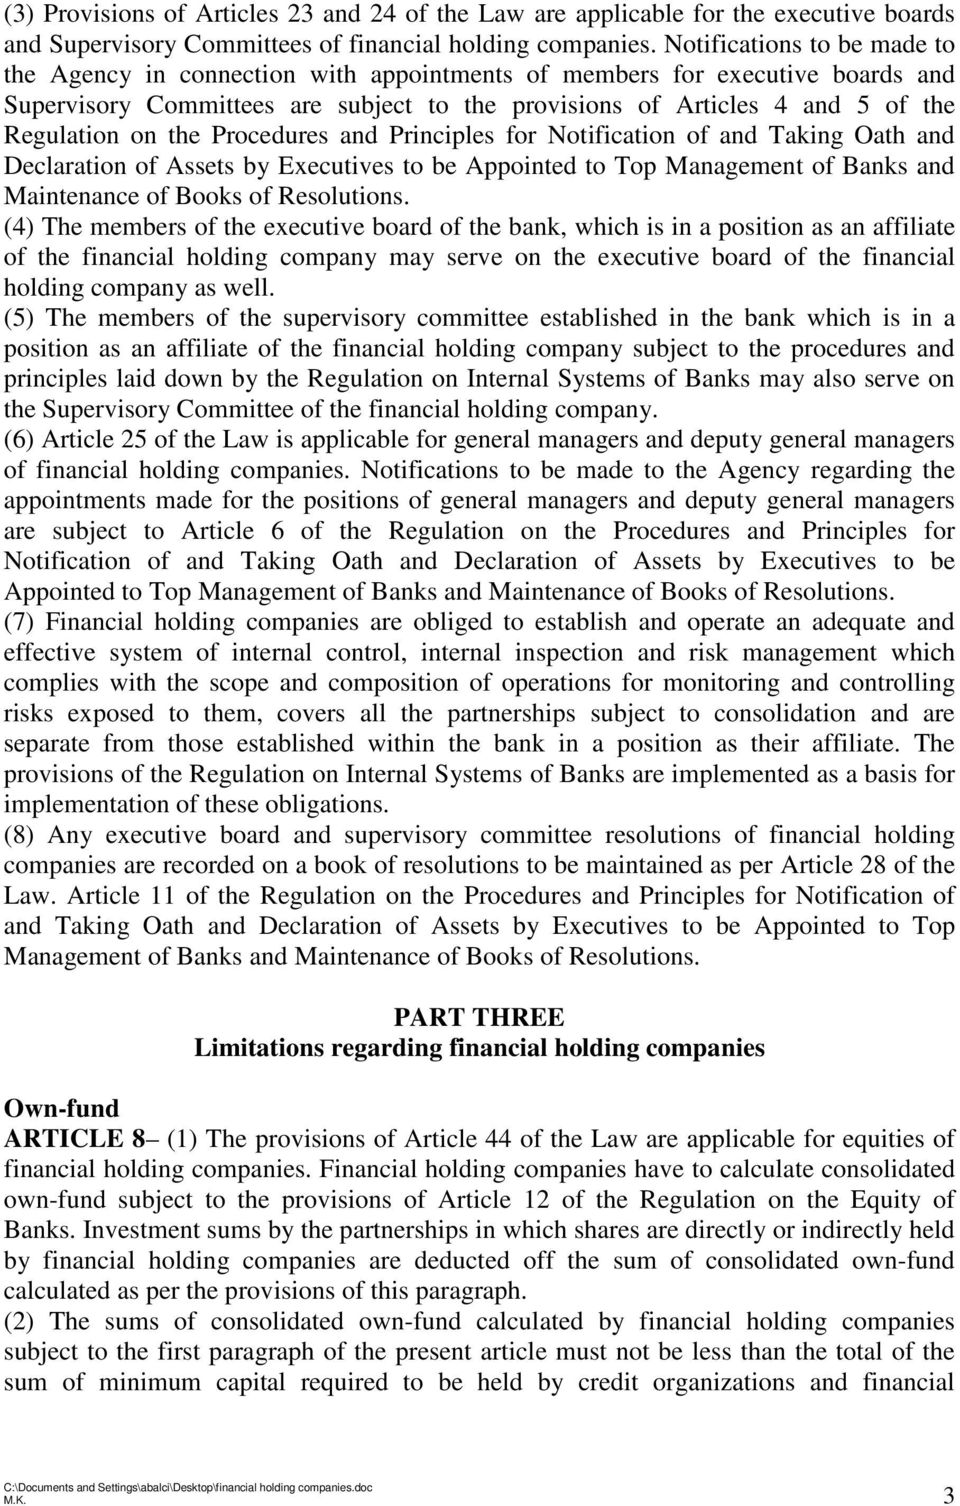 on the Procedures and Principles for Notification of and Taking Oath and Declaration of Assets by Executives to be Appointed to Top Management of Banks and Maintenance of Books of Resolutions.